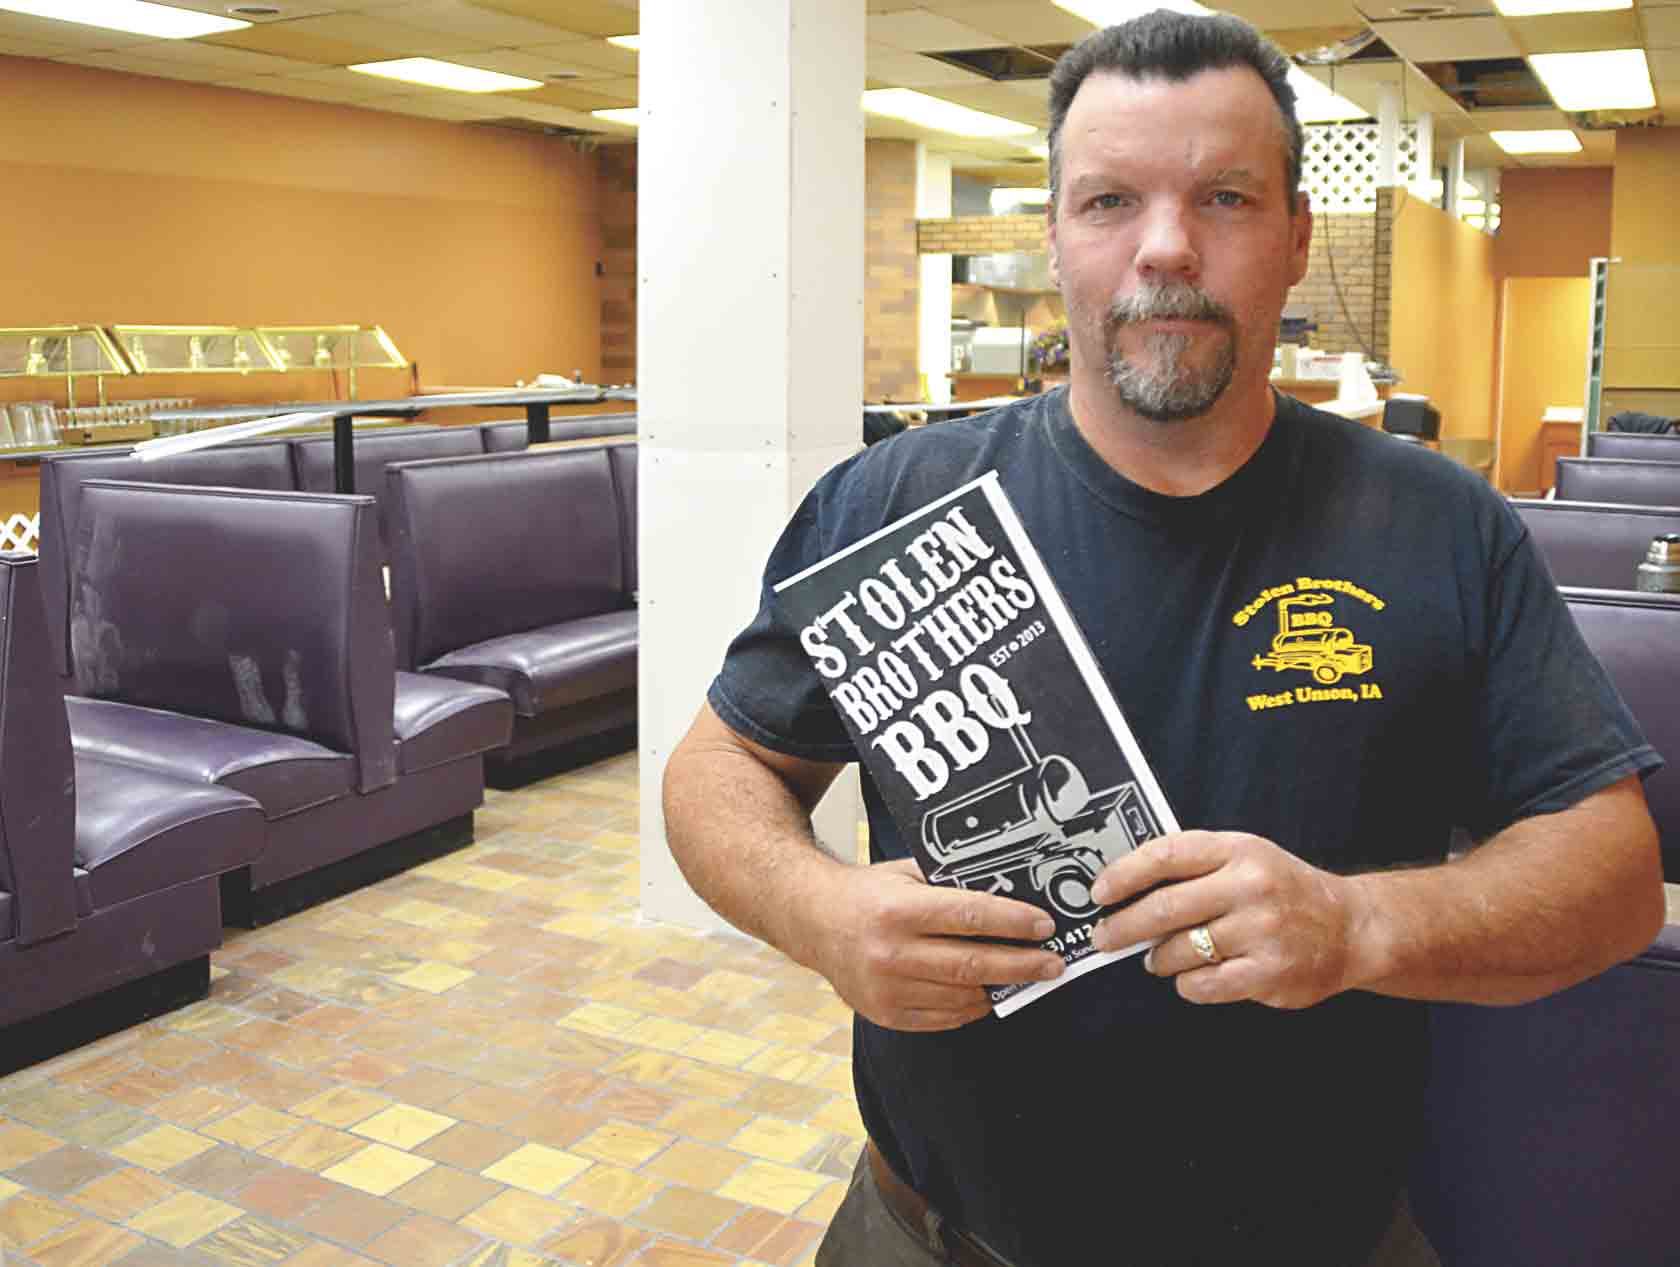 Stolen Brothers BBQ is close to reopening its doors at its new location in Lilac Plaza in West Union. Taking over the old Pizza Palace location, Stolen Brothers owner Dan Mueller (pictured) will be adding some new menu items and changing to more of a sit-down restaurant. The wait is almost...